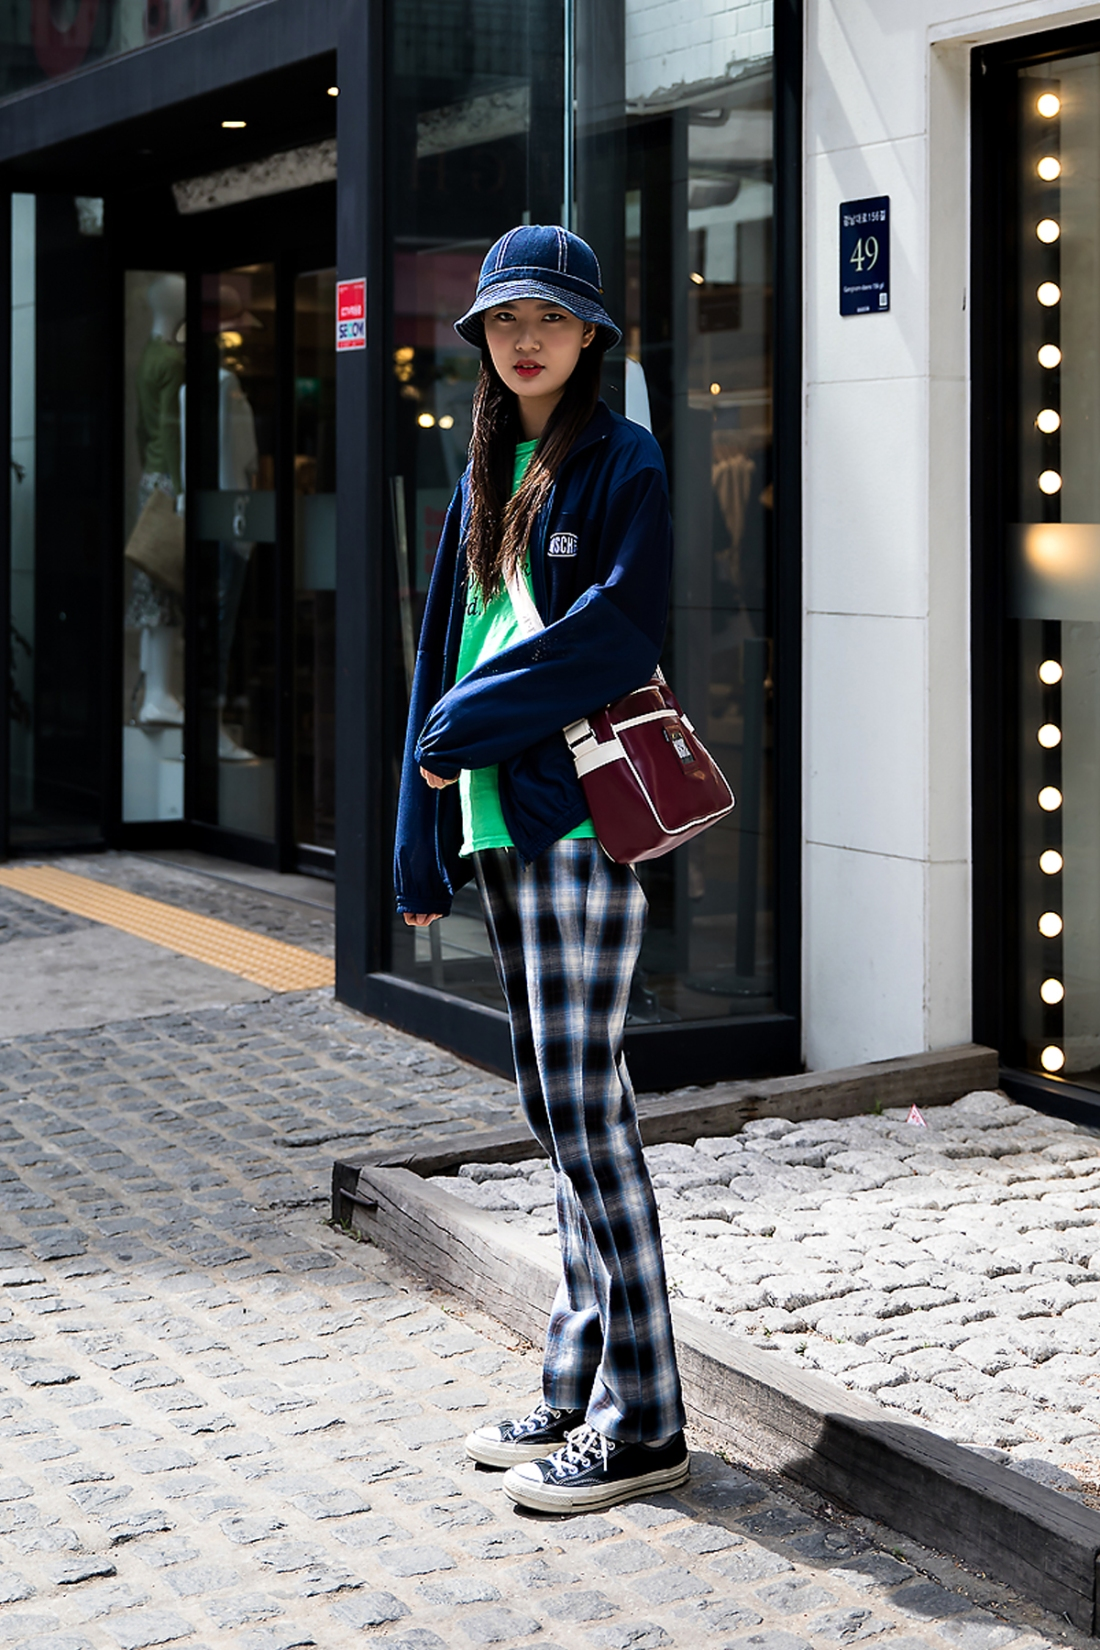 Lee Songhee, Street Fashion 2017 in Seoul.jpg